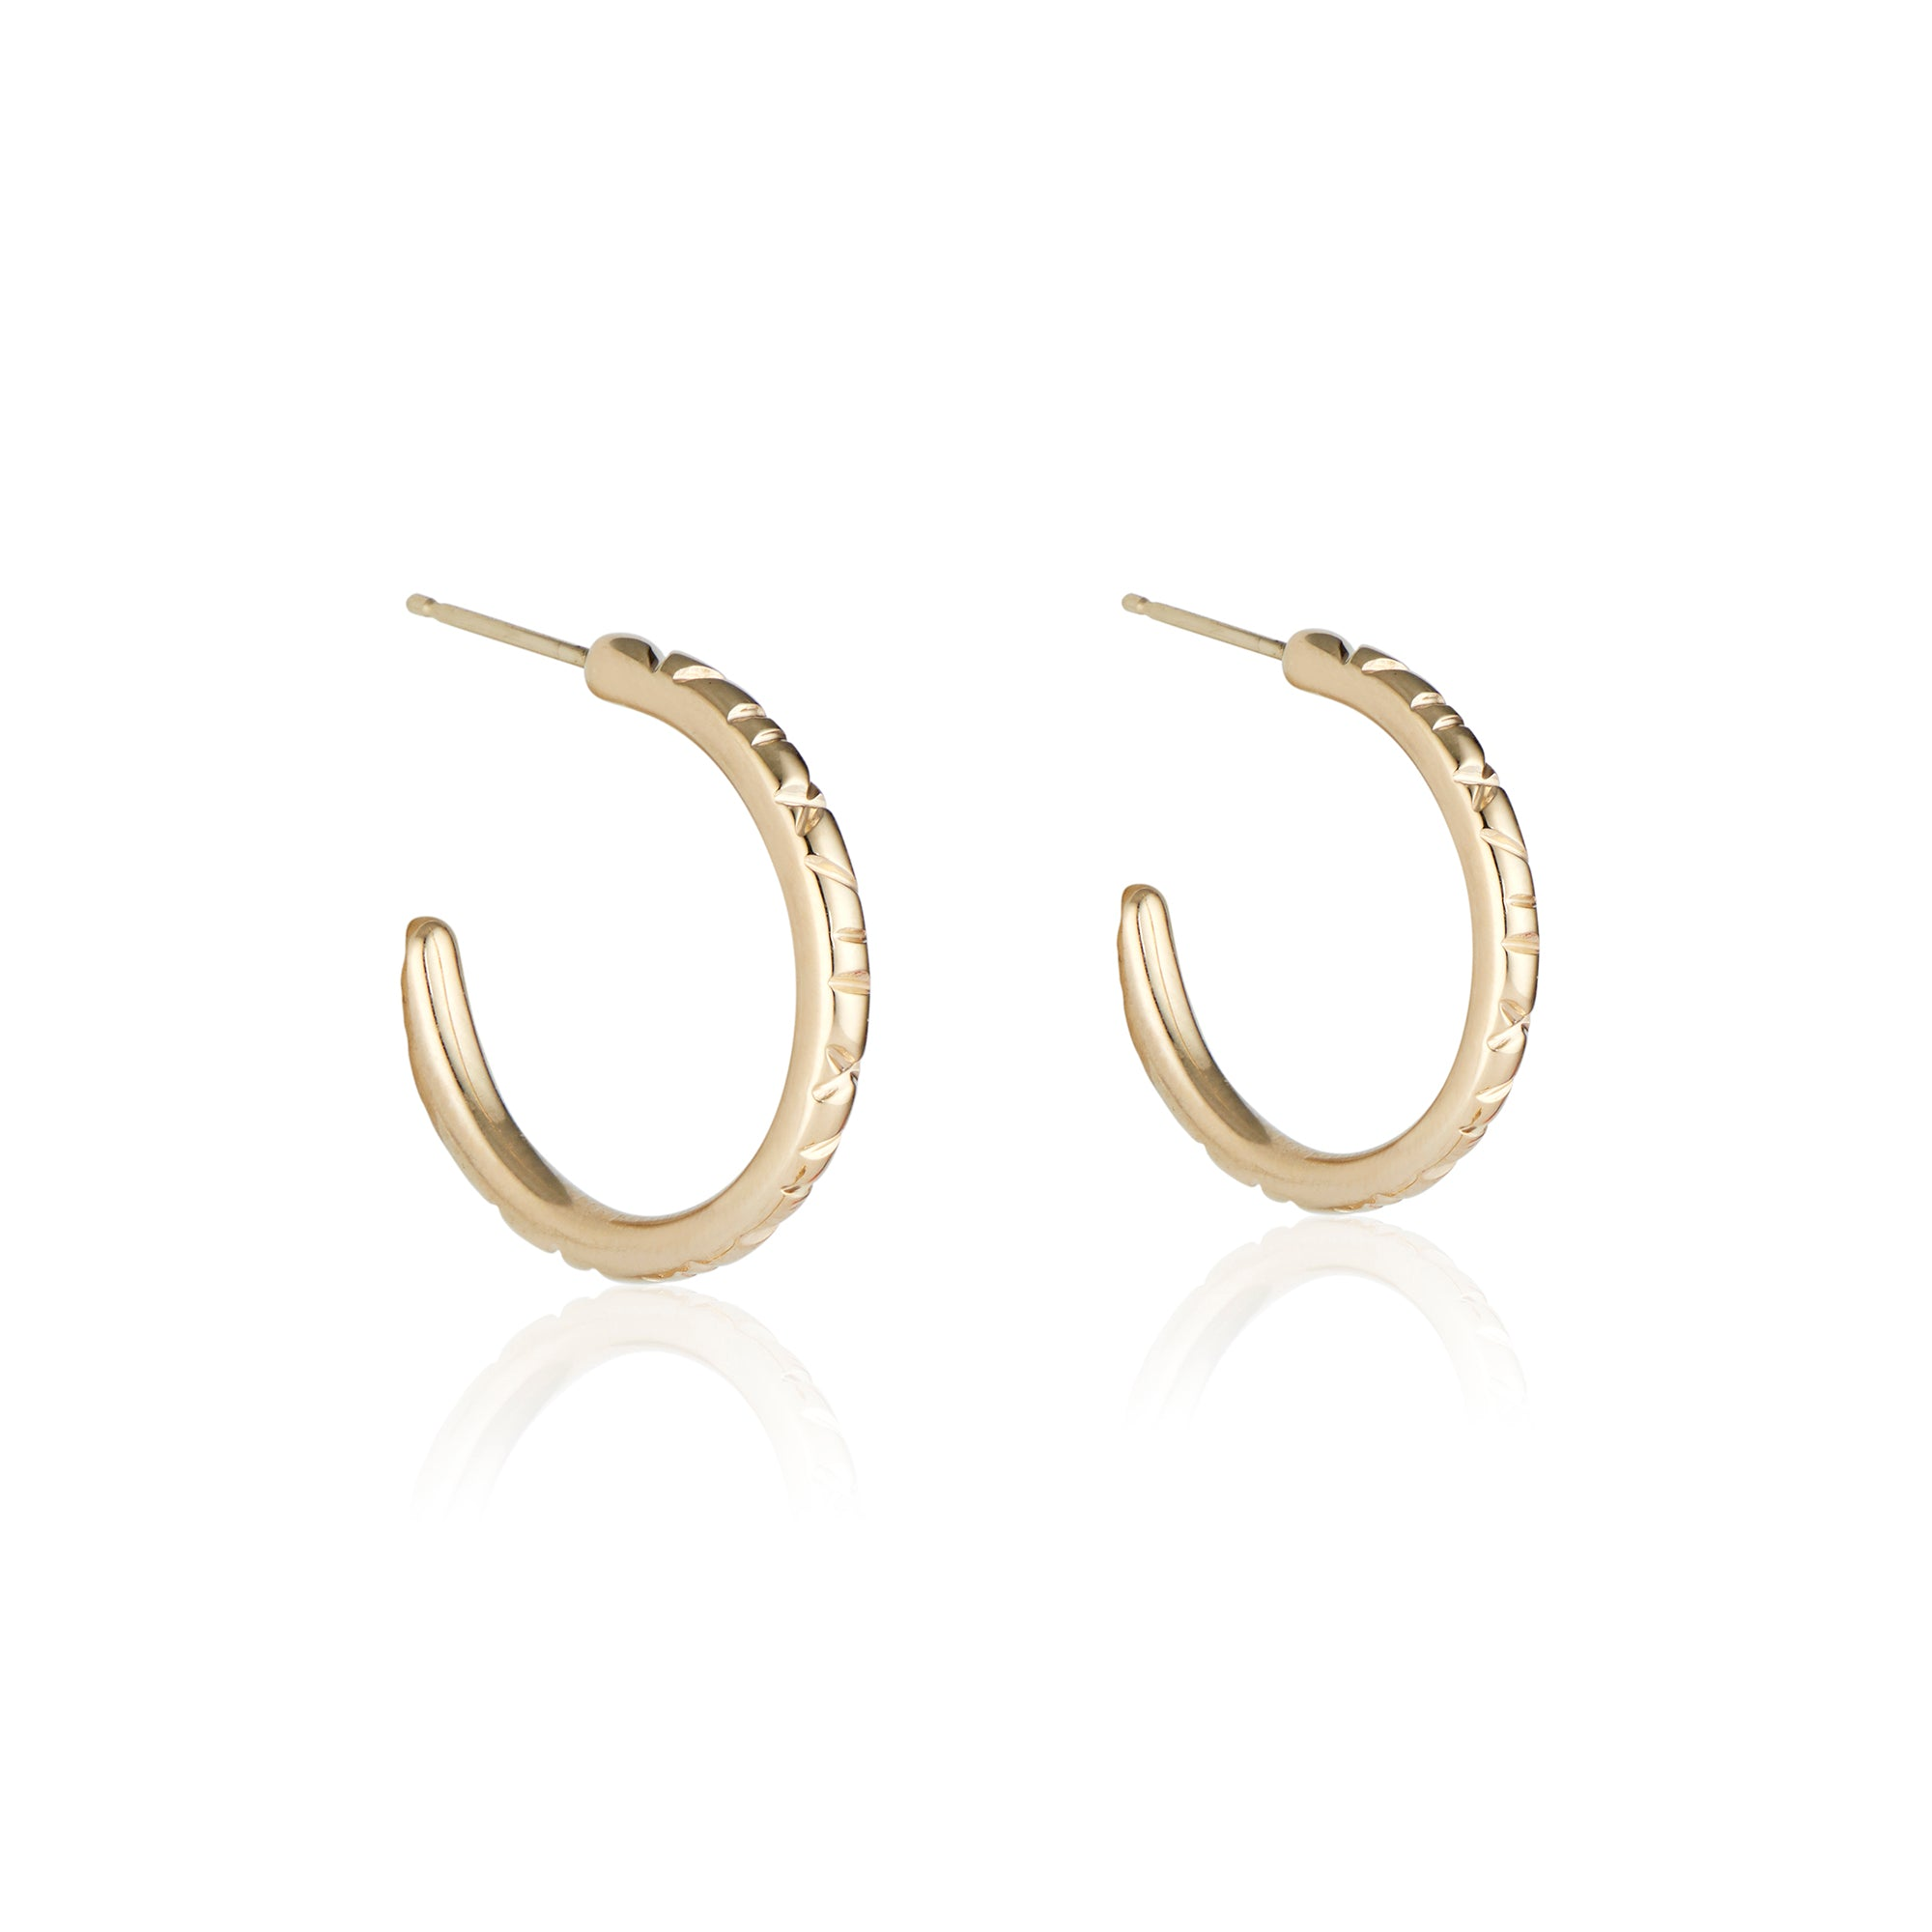 The Sunday hoop earrings by Natalie McMillan are perfect for the lover of a small every day hoop that still makes a statement. Solid gold, yet lightweight with 14k yellow gold posts and backs for an easy on, easy off hoop (although you're never gonna want to take them off)!